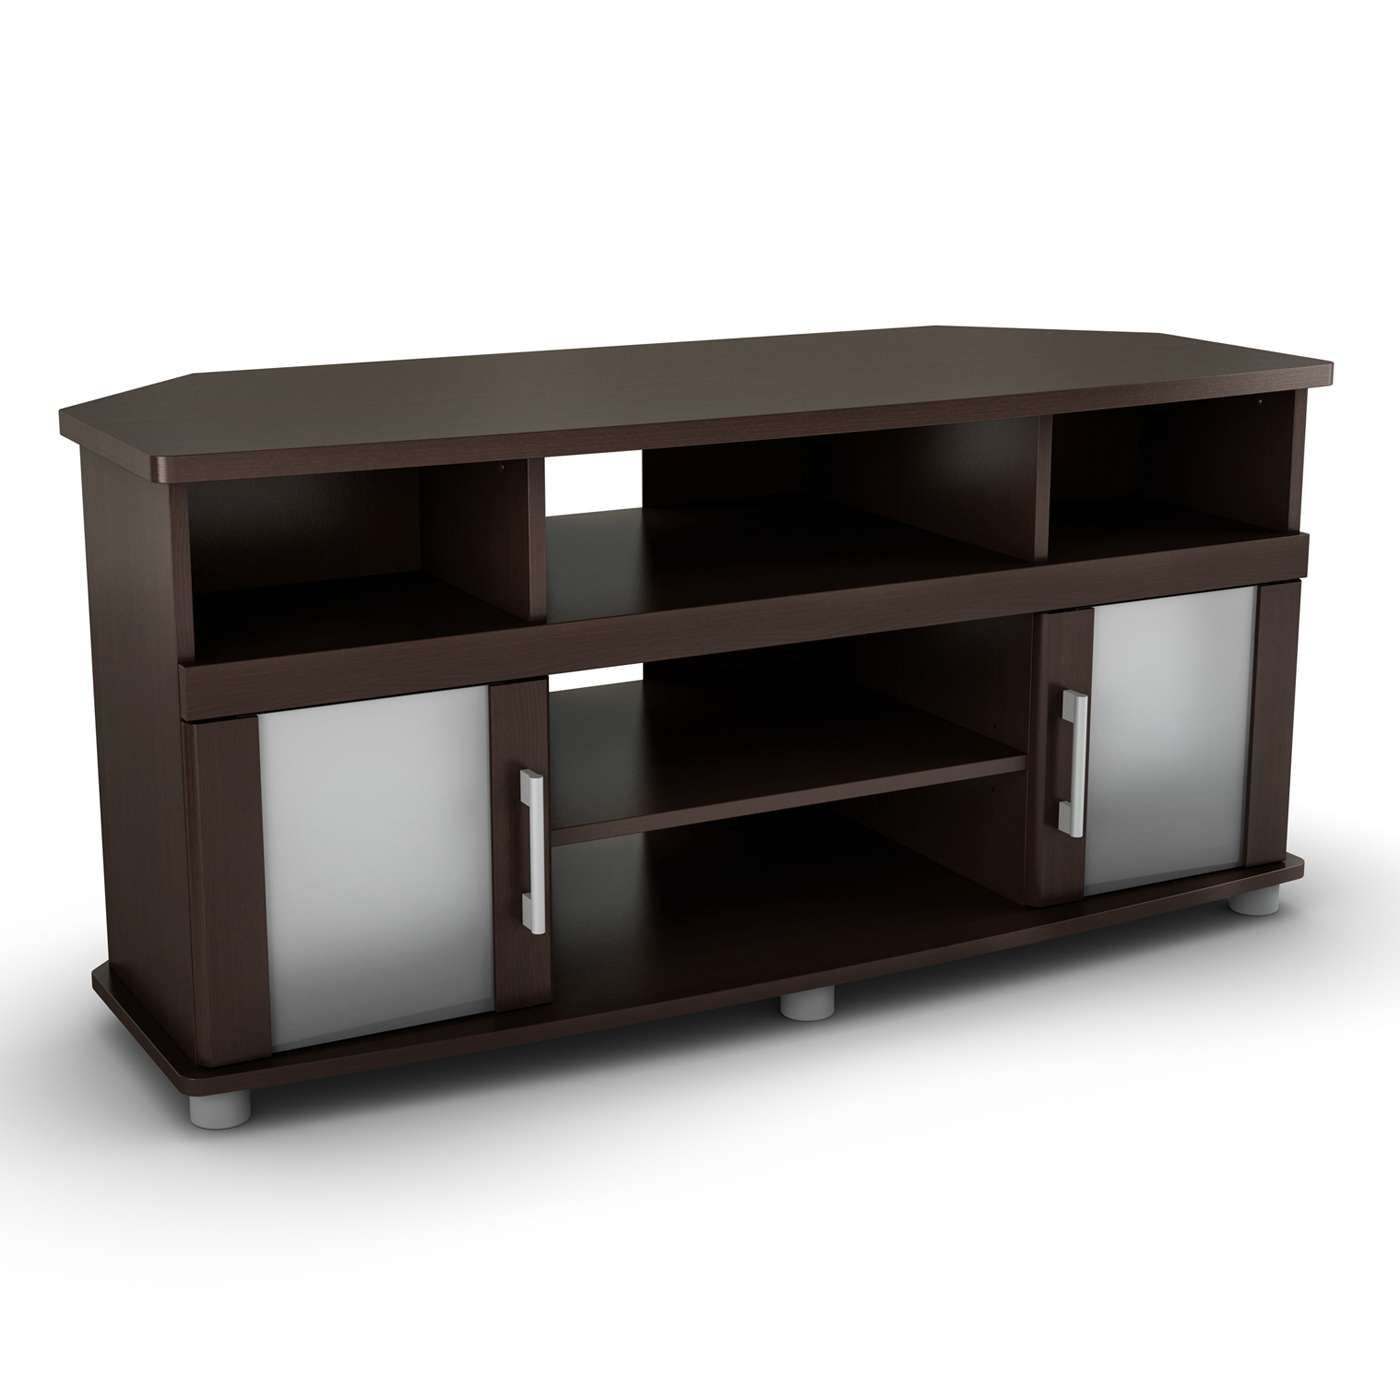 Modern Tv Stands | Lowe's Canada Throughout Modern Corner Tv Stands (View 15 of 20)